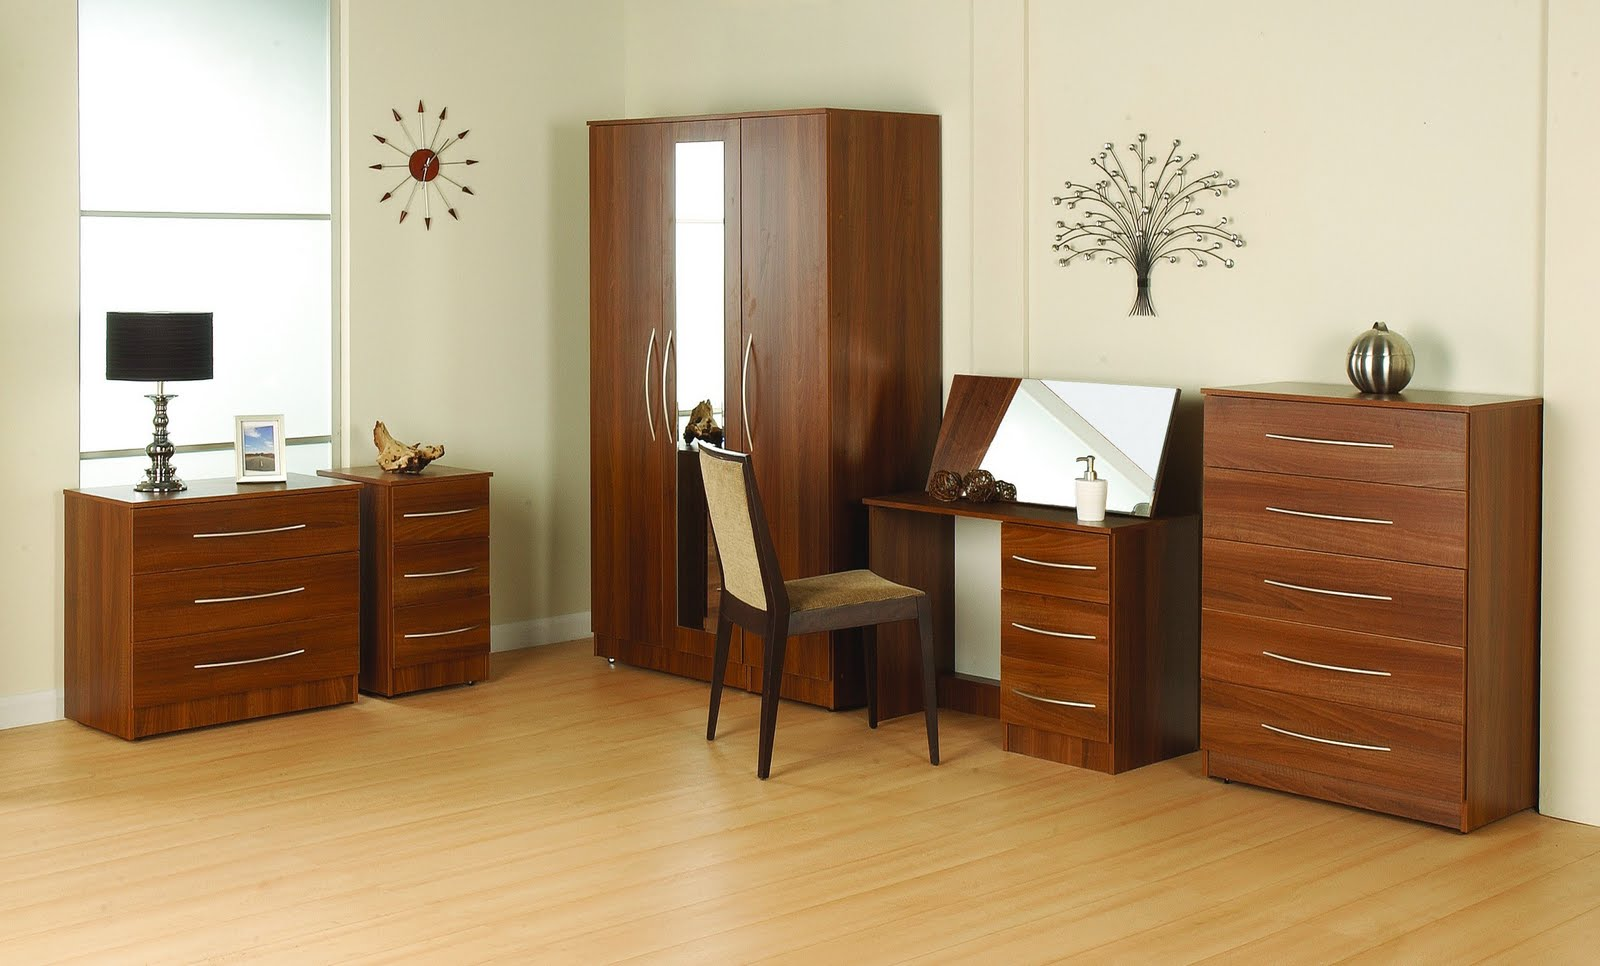 Home furnishing wardrobe designs for Wardrobe designs for small bedroom